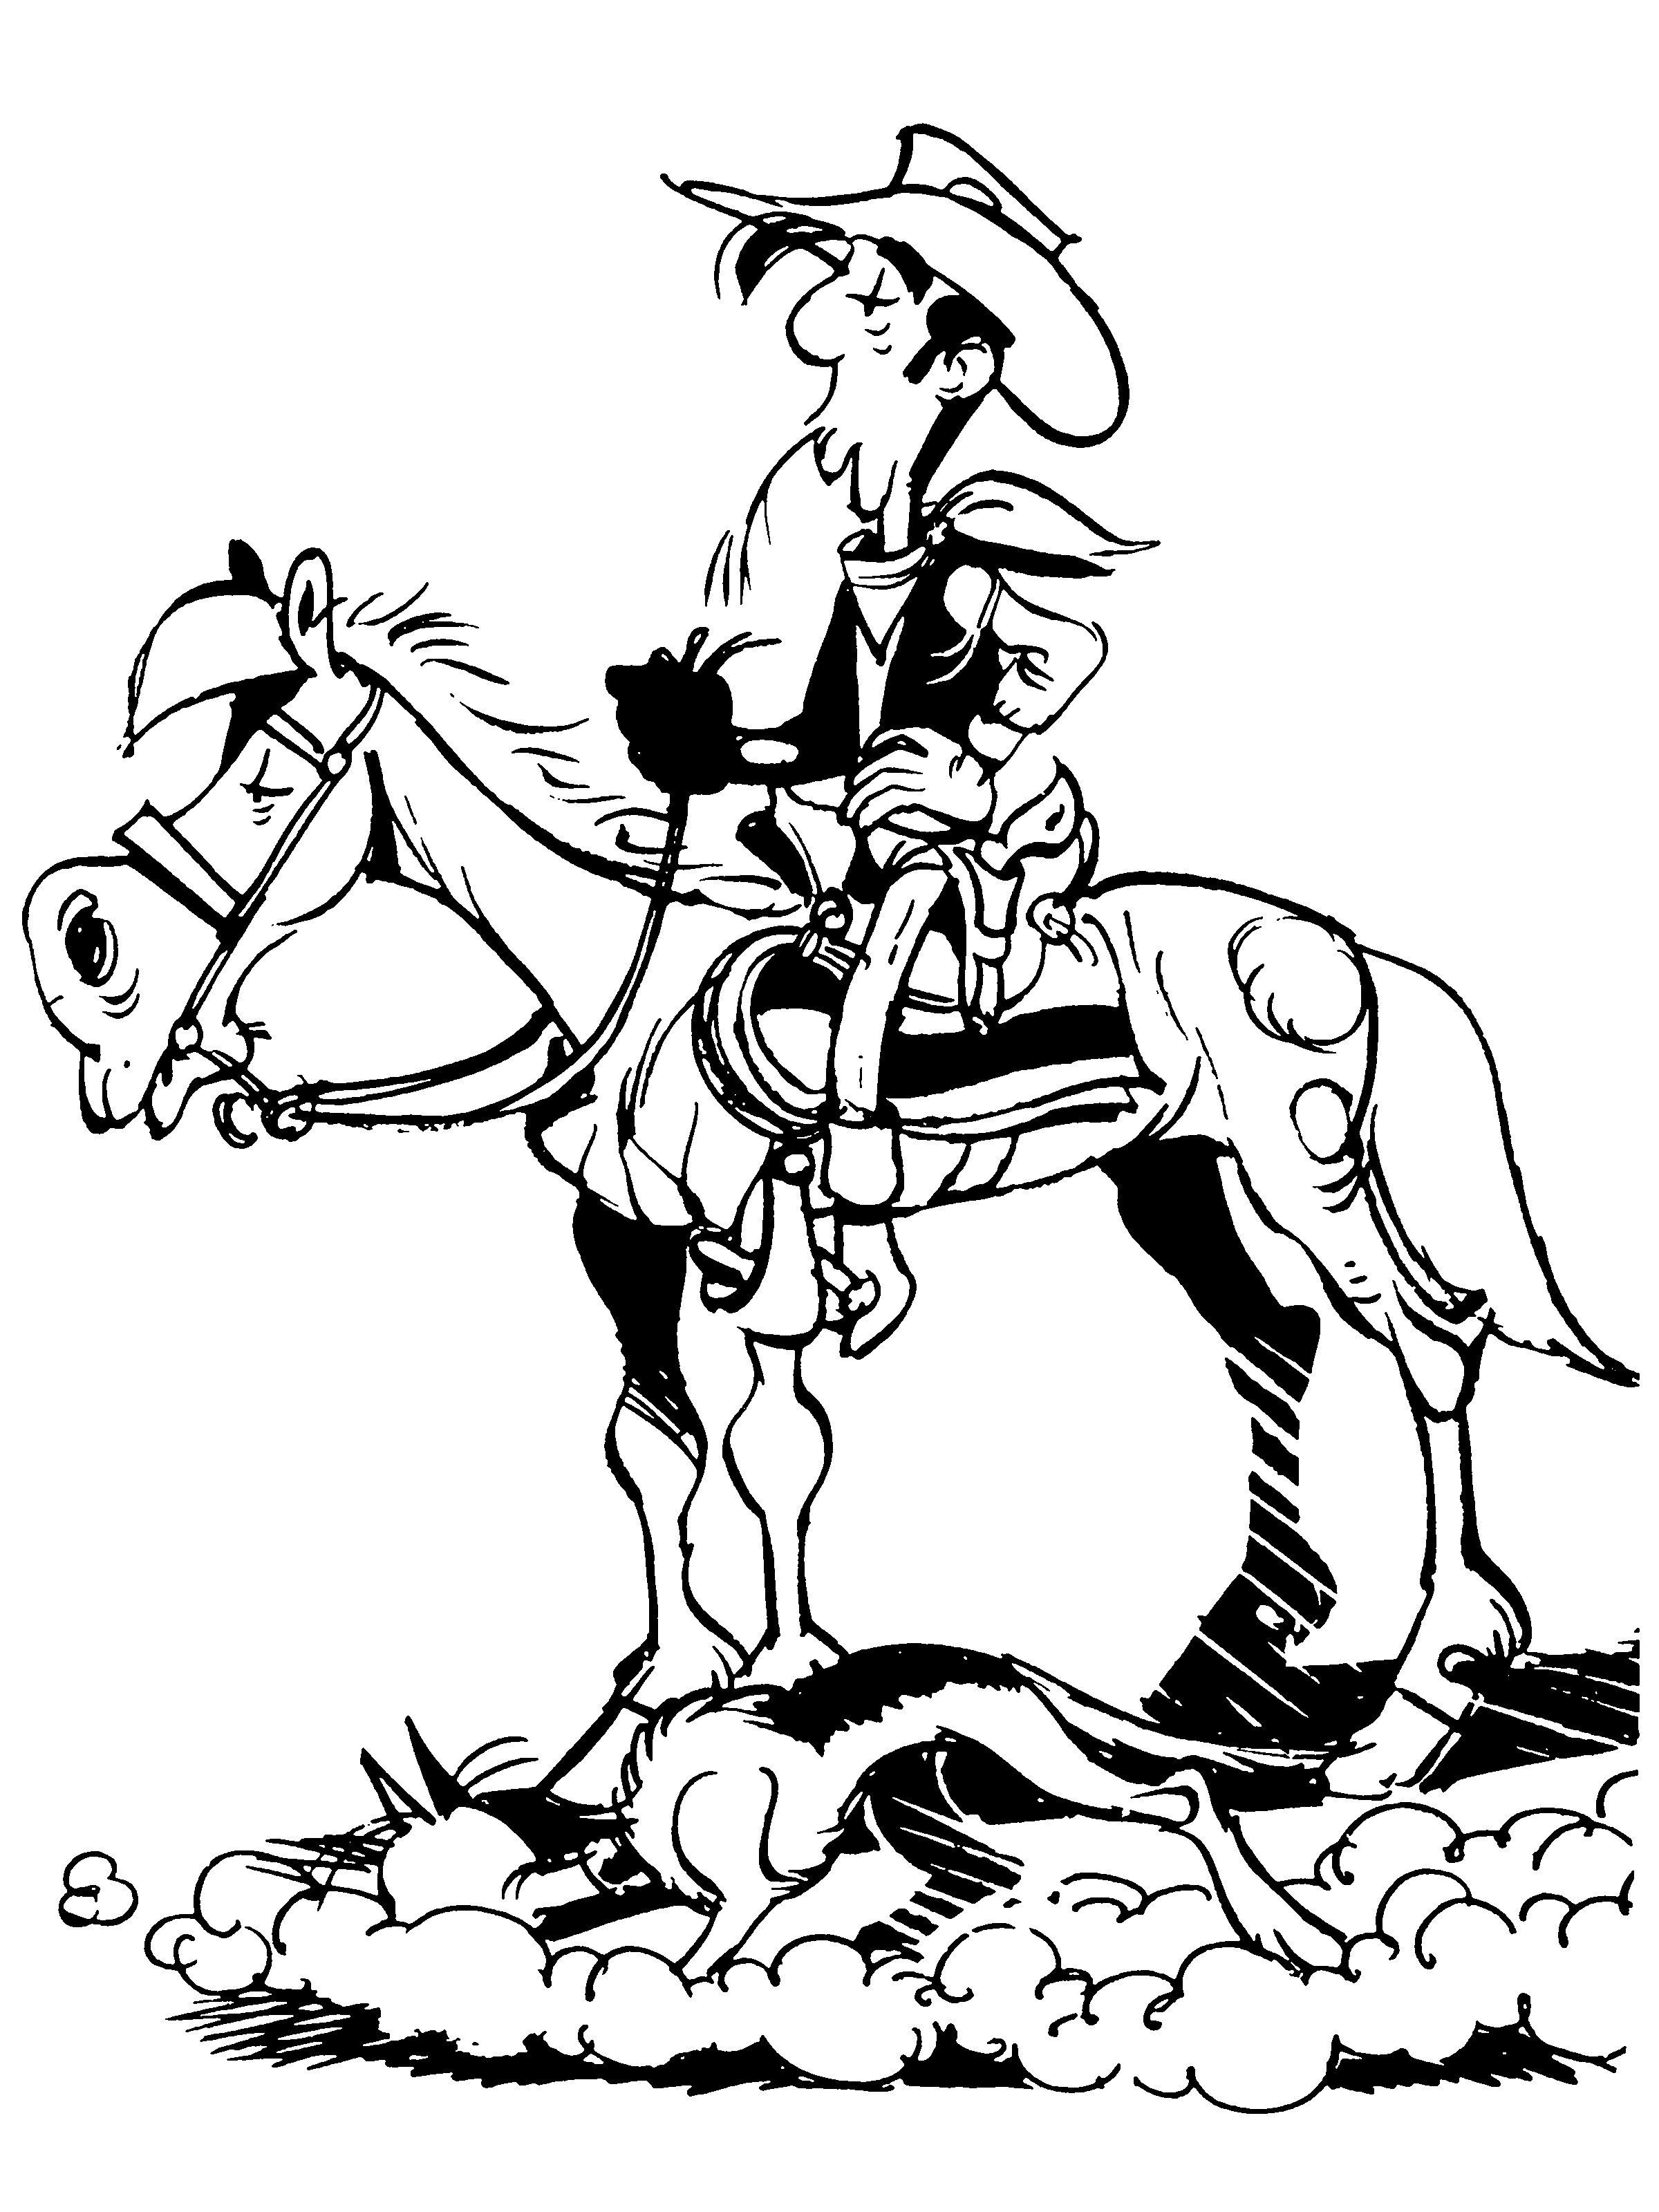 lucky-luke-coloring-page-0027-q1